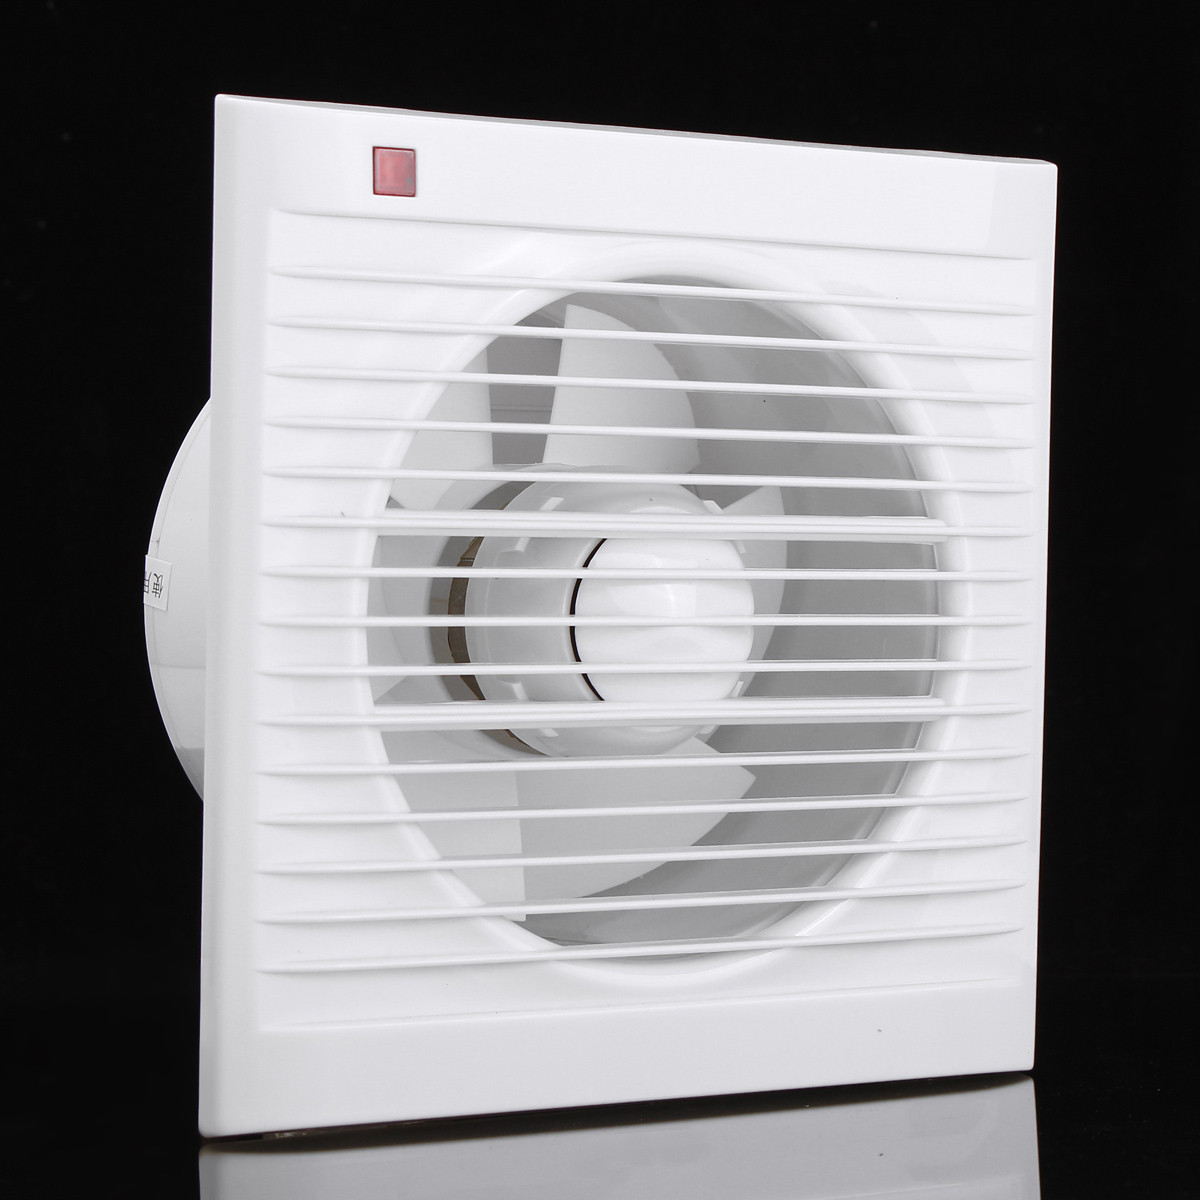 Kitchen Exhaust Fan Small 4 6 8 Waterproof Mute Bathroom Extractor Exhaust Fan